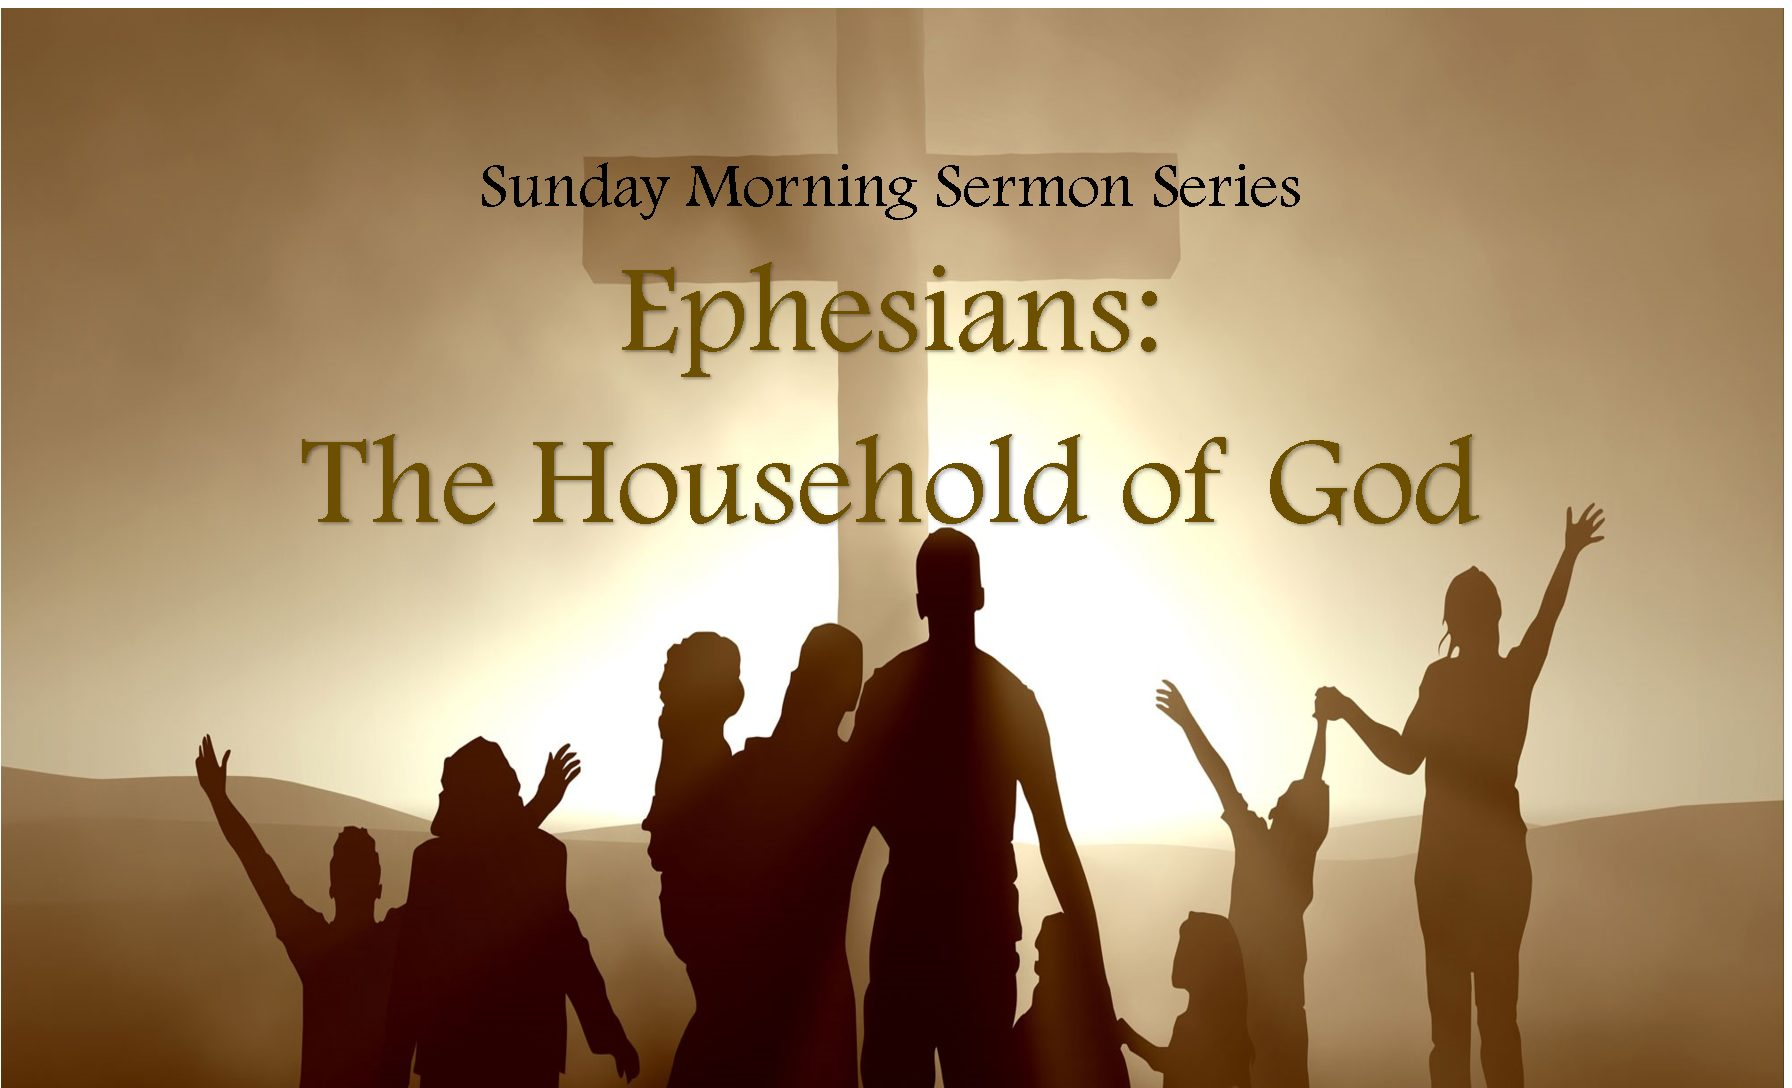 The Household of God: The Son's Gracious Mission